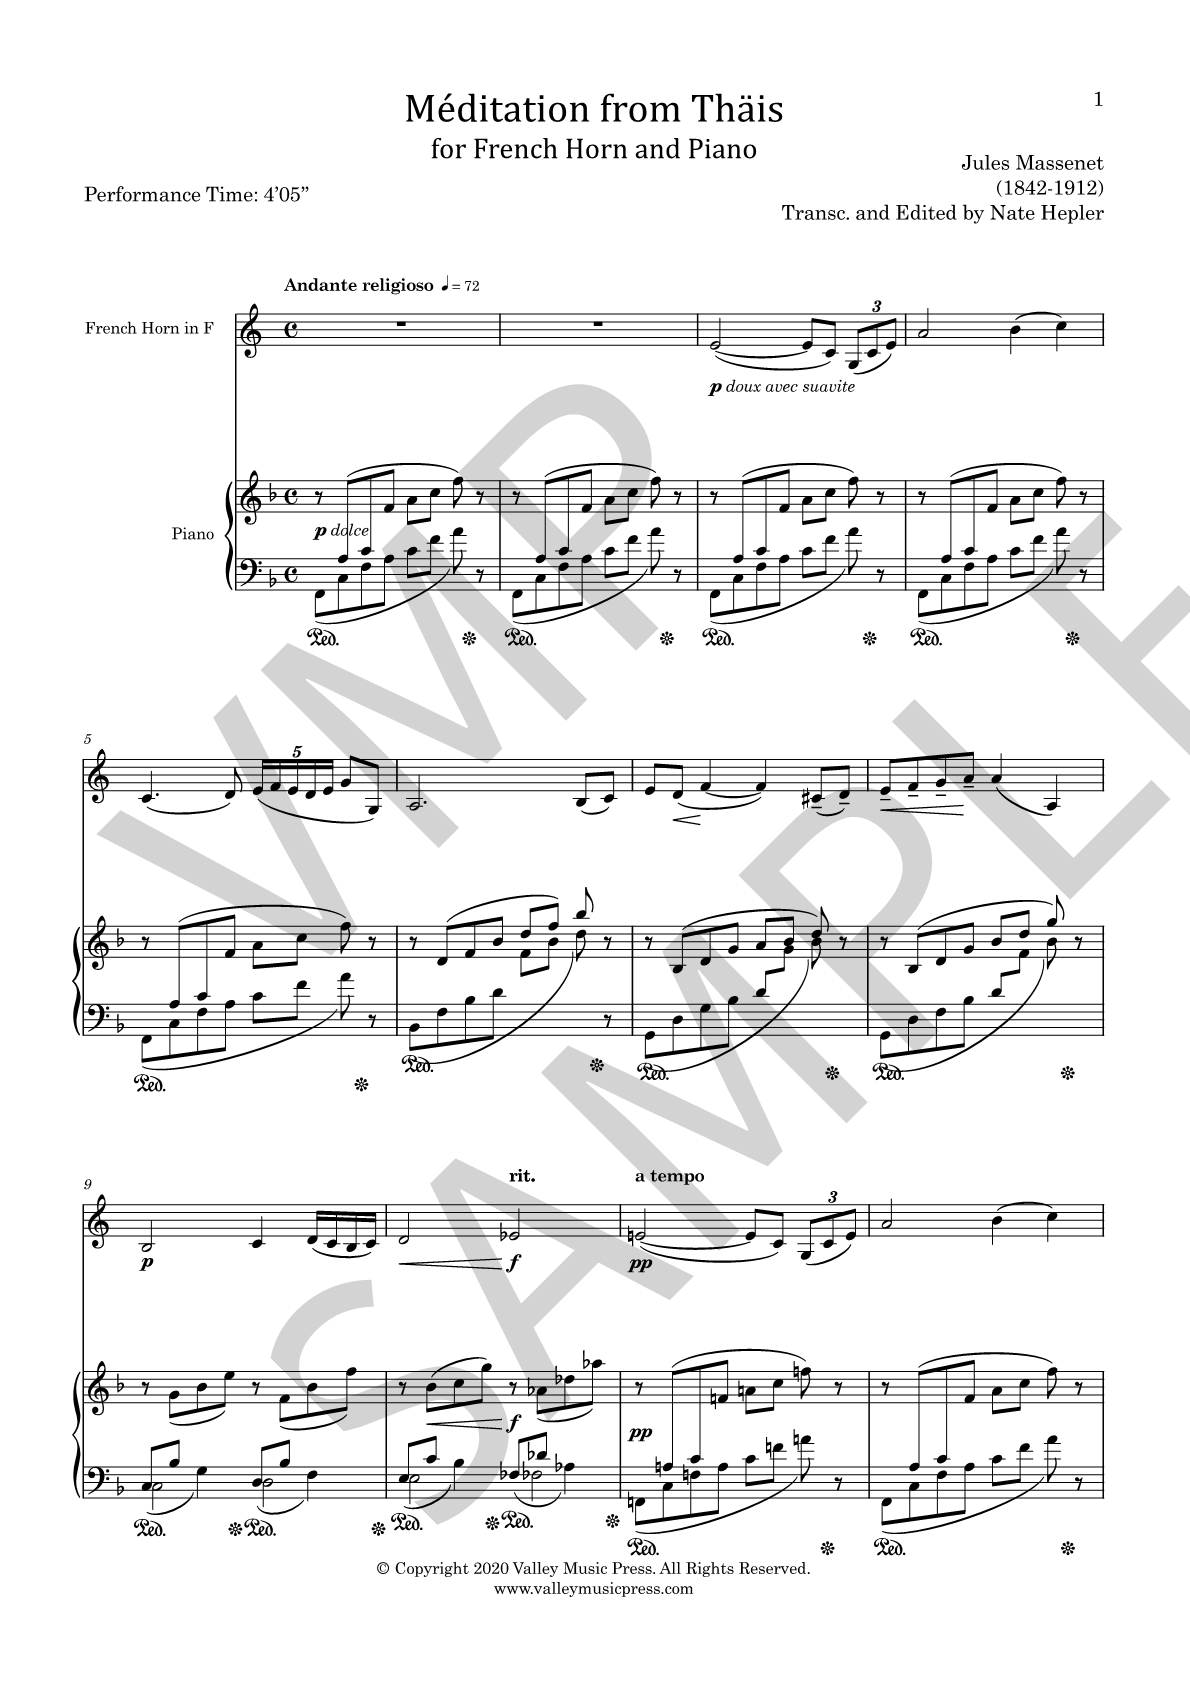 Massenet - Meditation from Thais (Hrn & Piano) - Click Image to Close